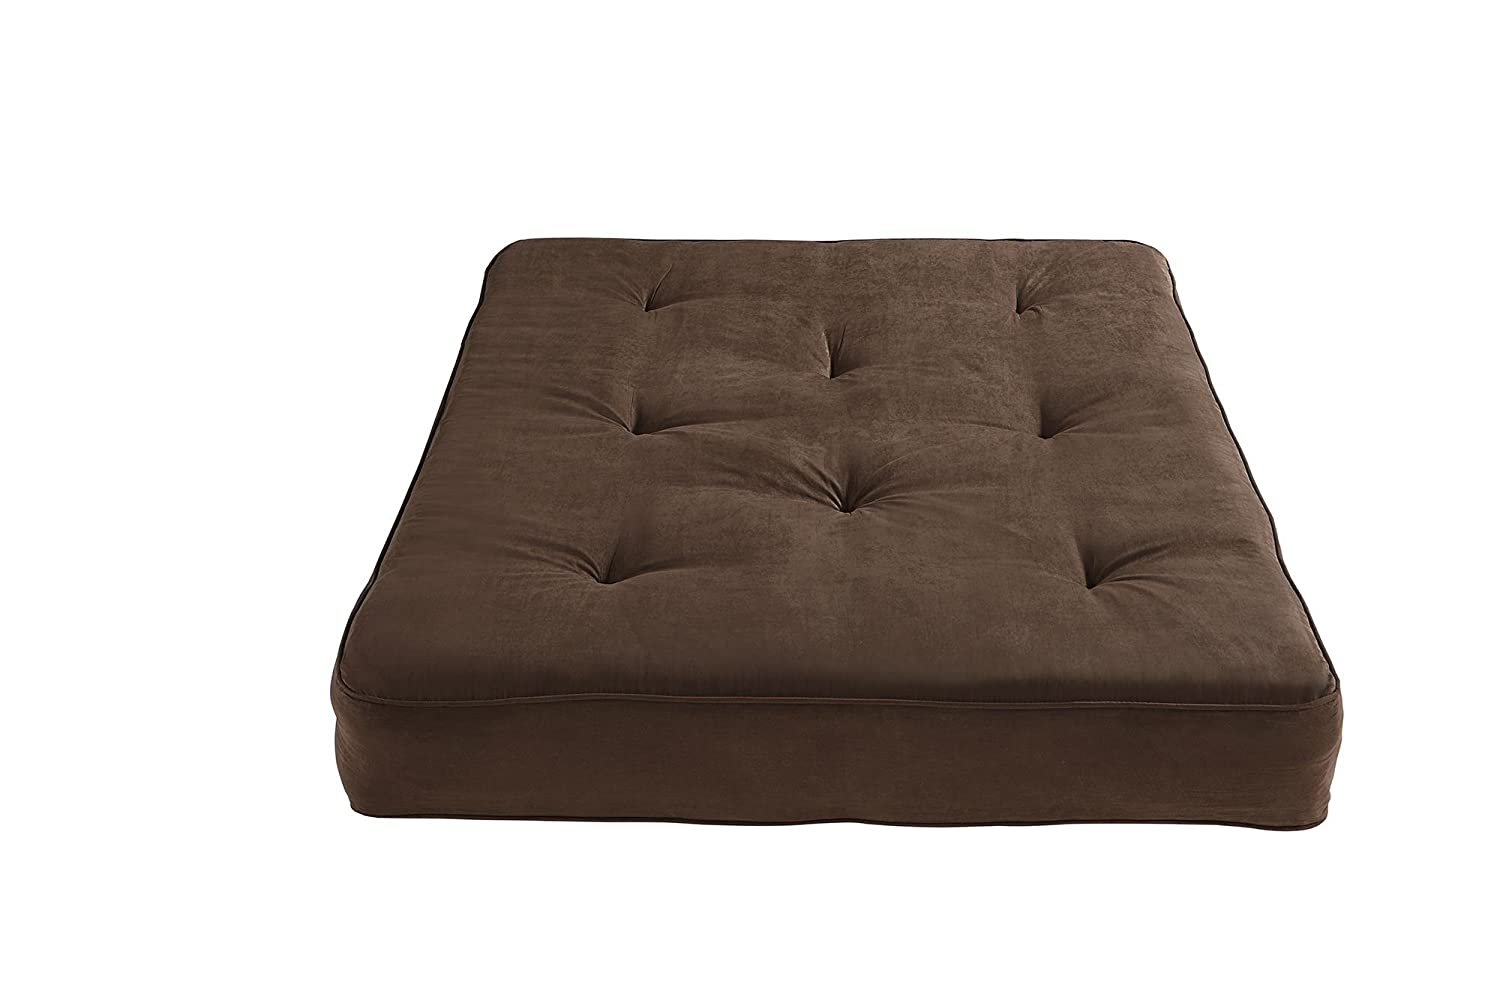 Best futon mattress #1